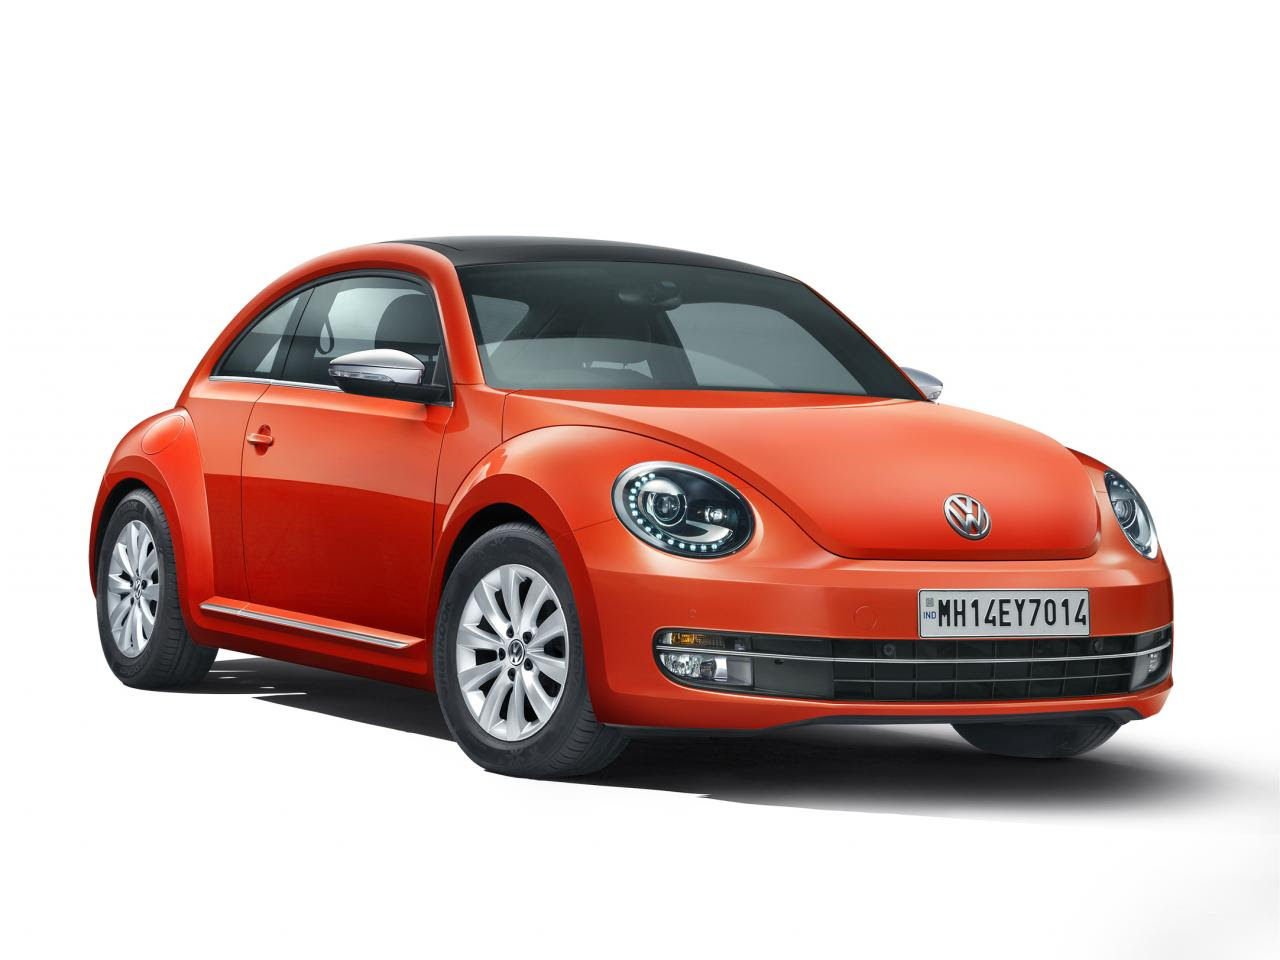 New Volkswagen Beetle onsale in India  Rs. 28.73 lakh